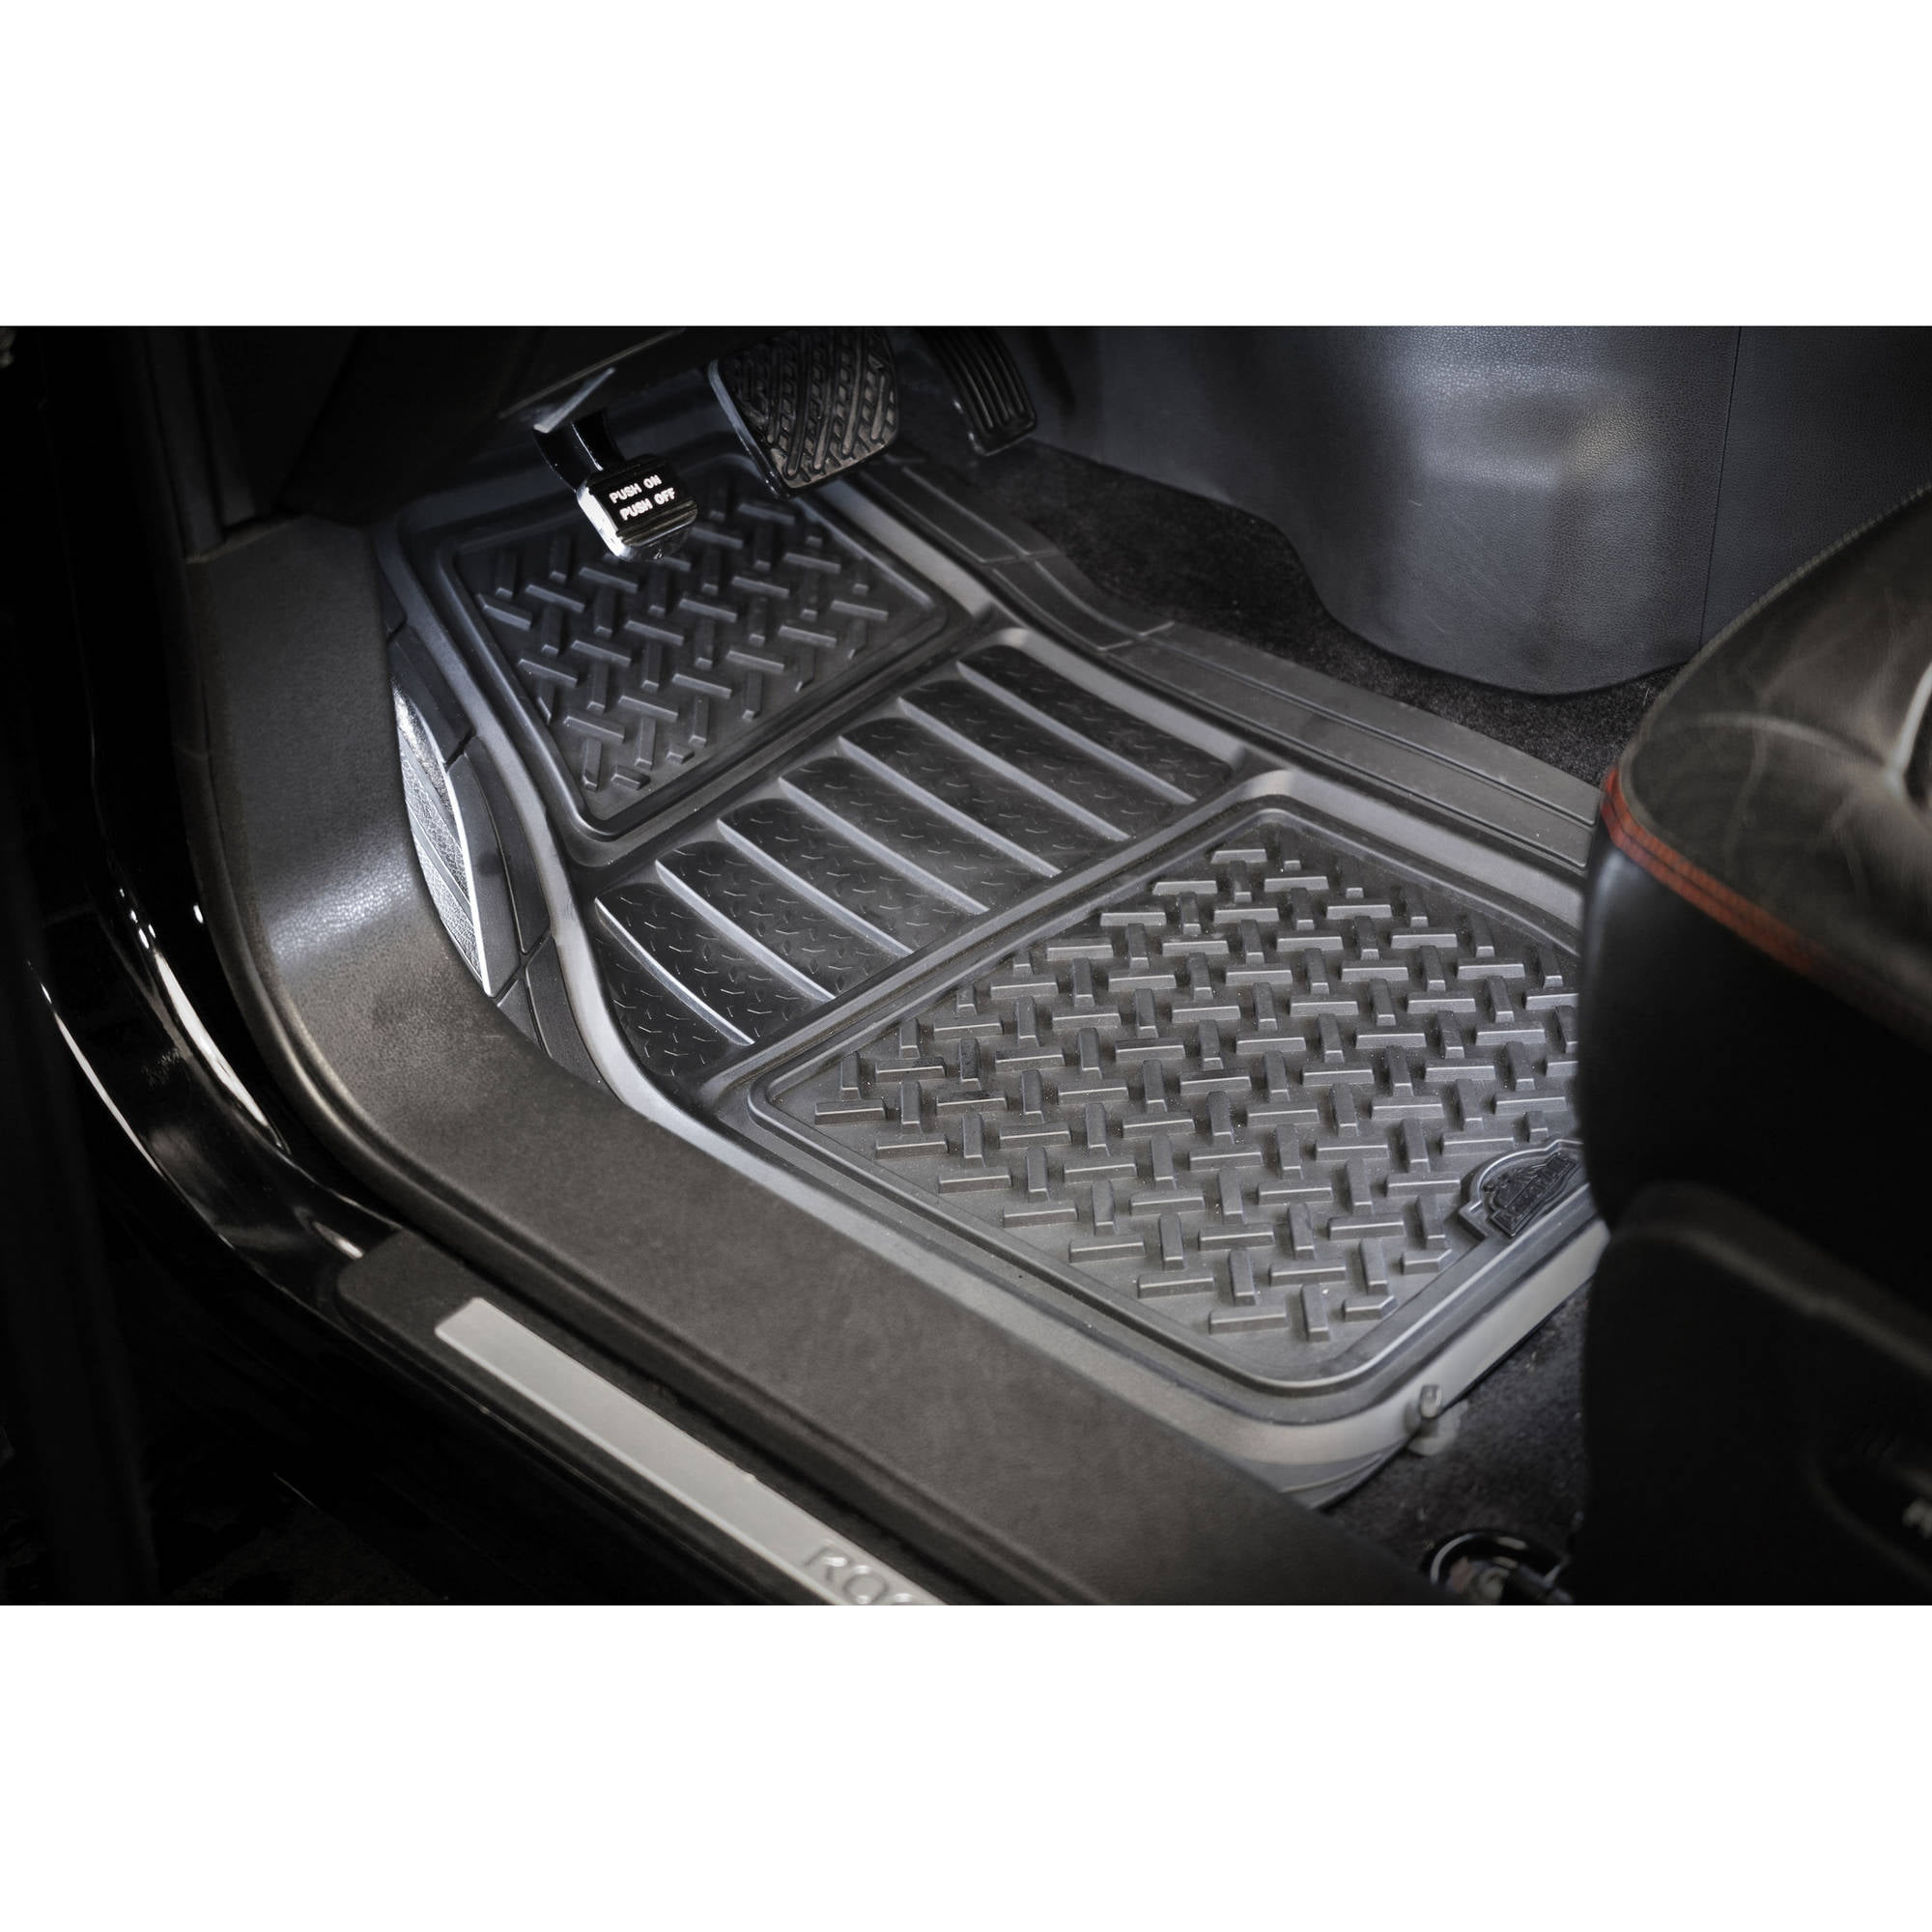 white wwhite buick gs floor mats skylark since interior blue car the legendary mat auto dk floormats detail w original repro interiors rubber specialists